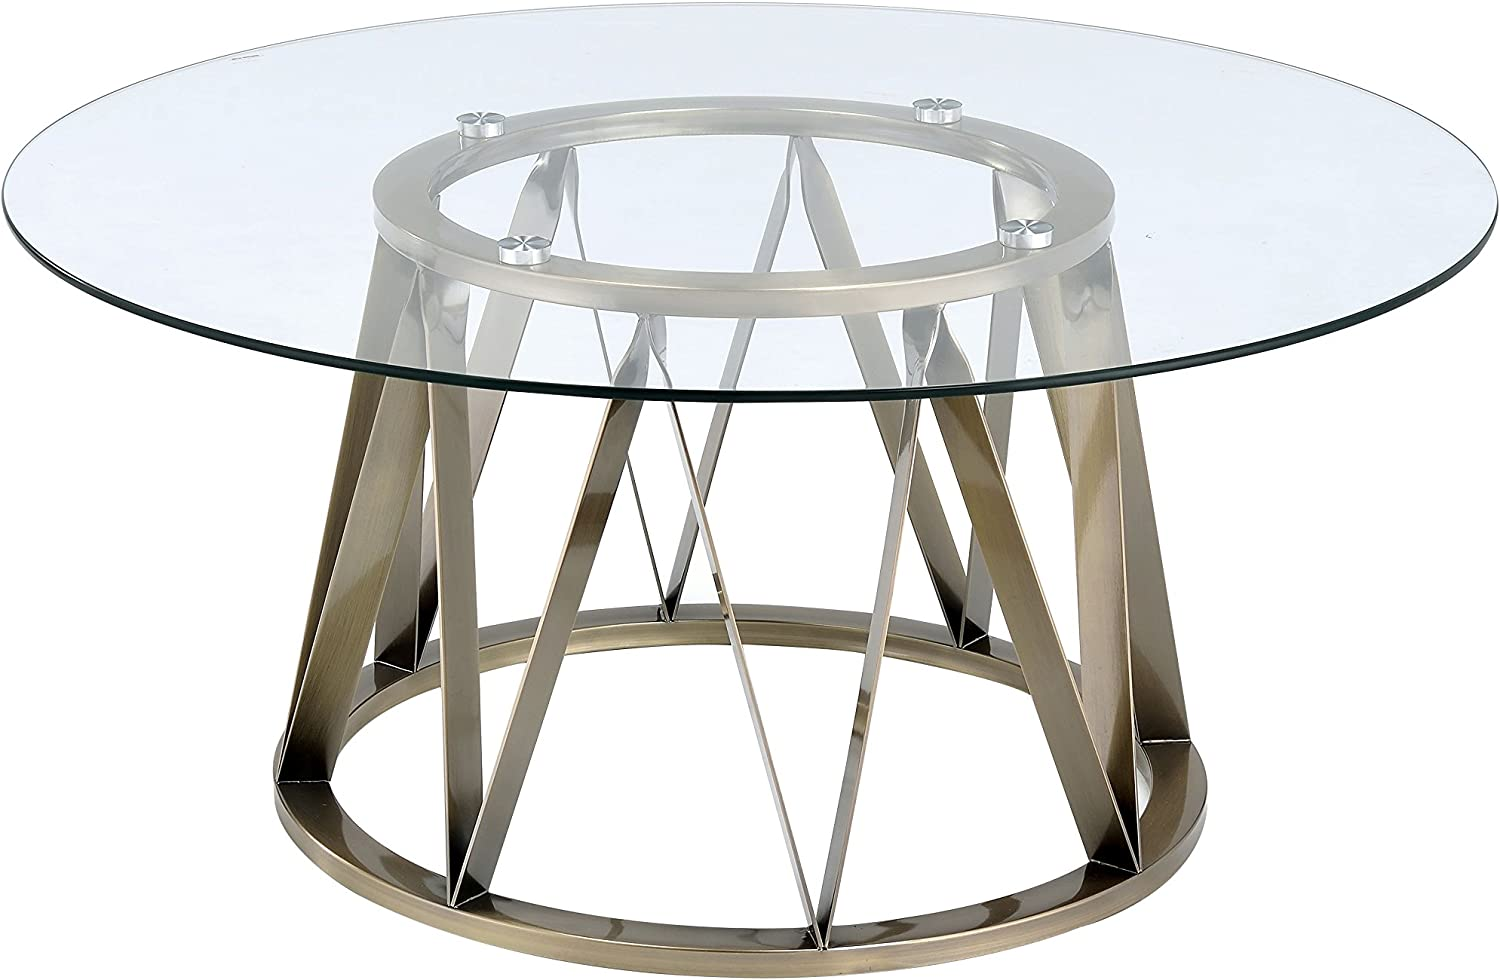 Acme Perjan Antique Brass Coffee Table With Glass Top Amazon Ca Home Kitchen